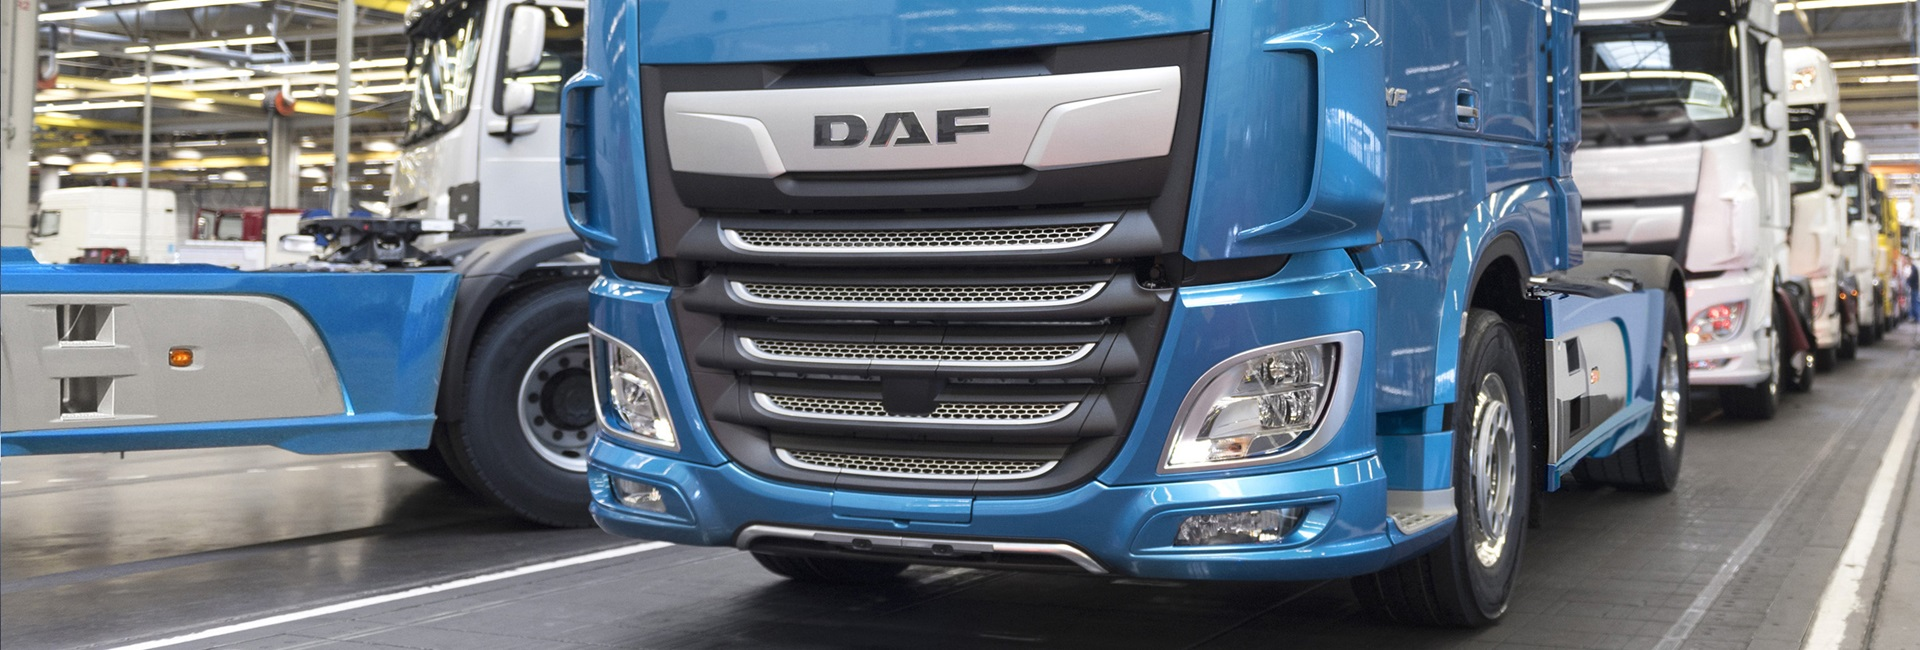 DAF truck factory